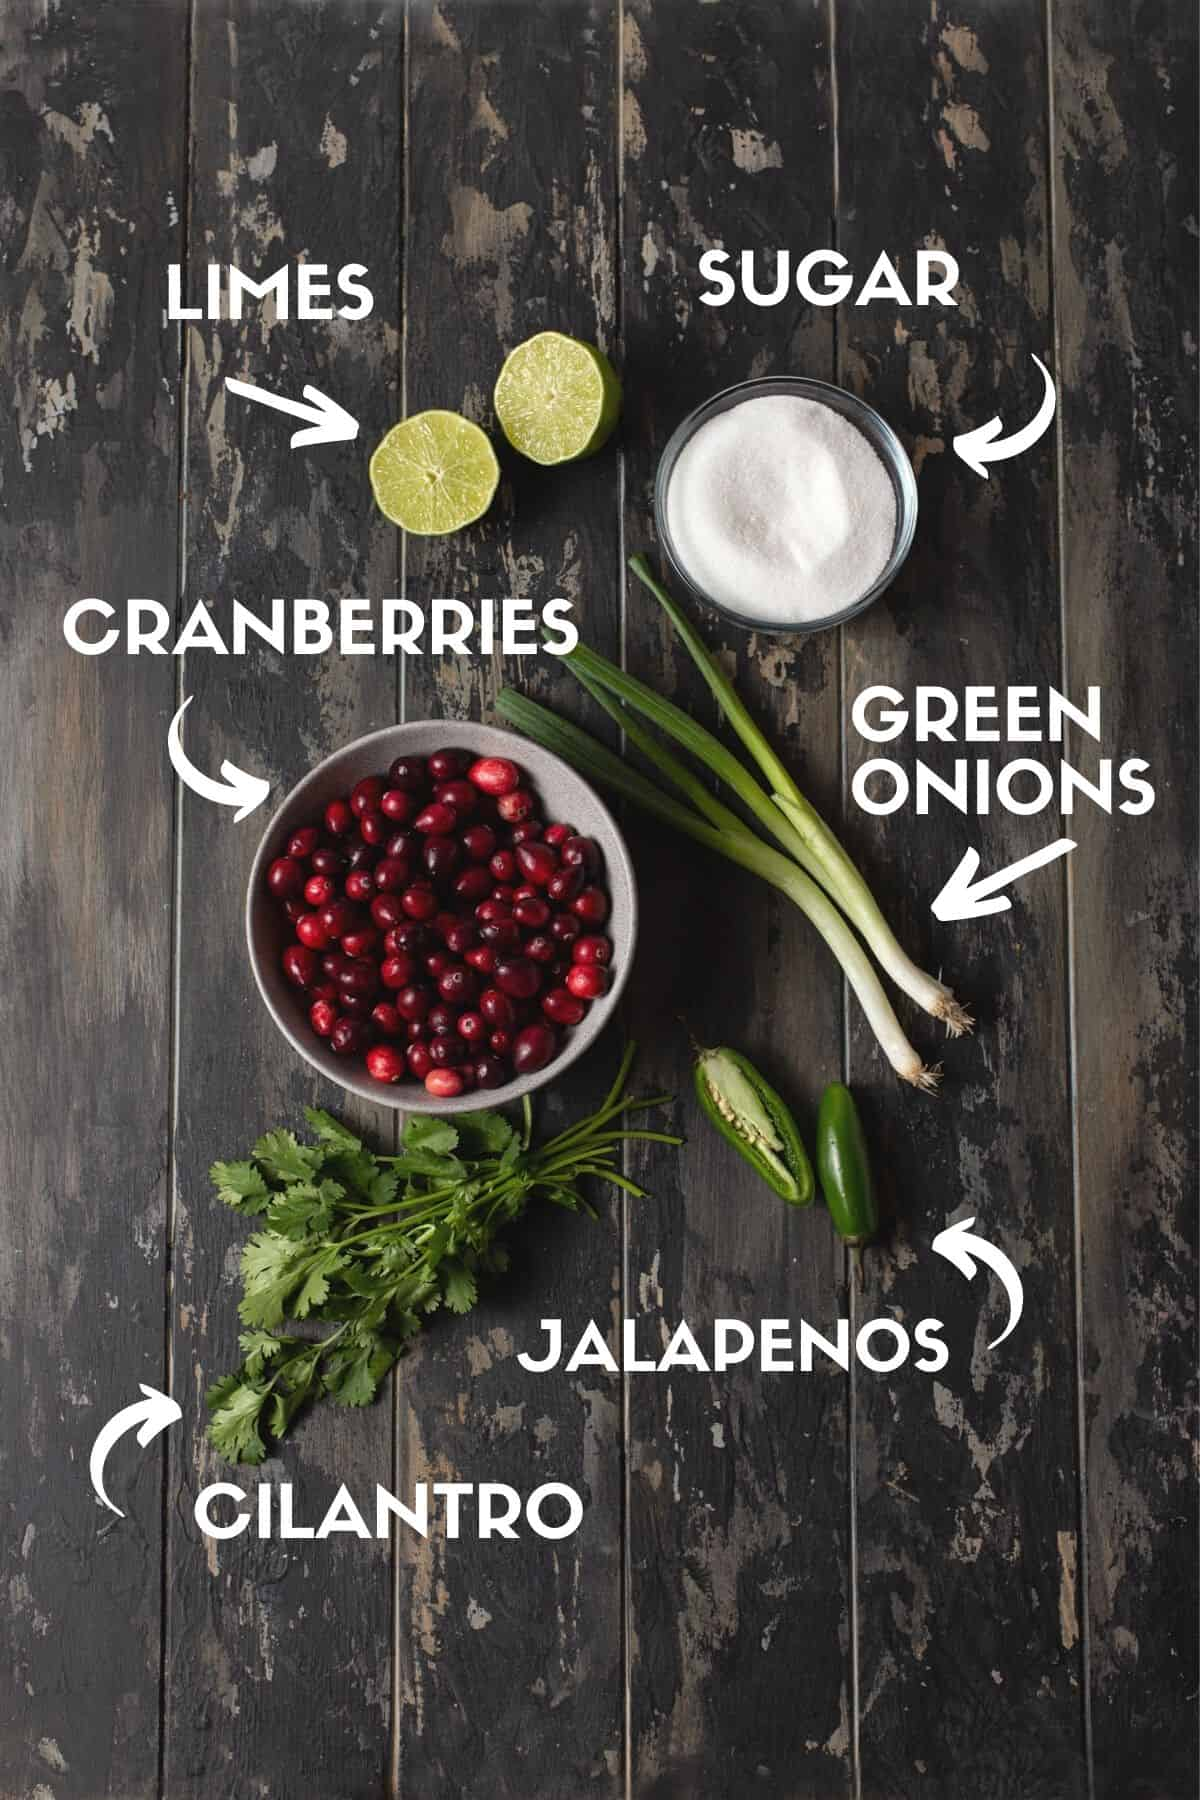 Salsa and Cranberry ingredients text.